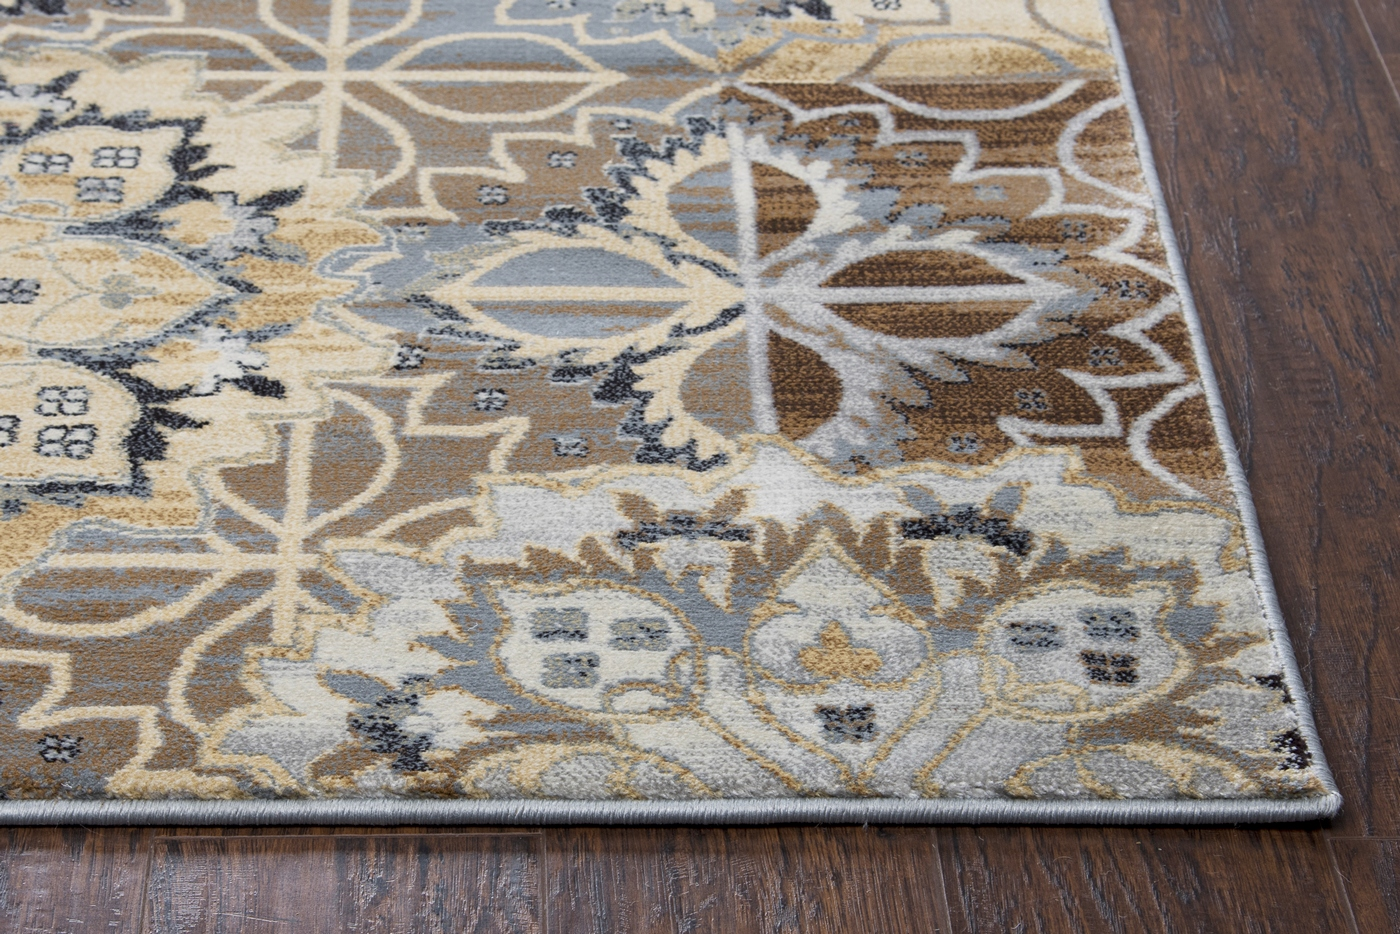 Bennington Floral Trellis Area Rug In Blue Yellow Brown 3